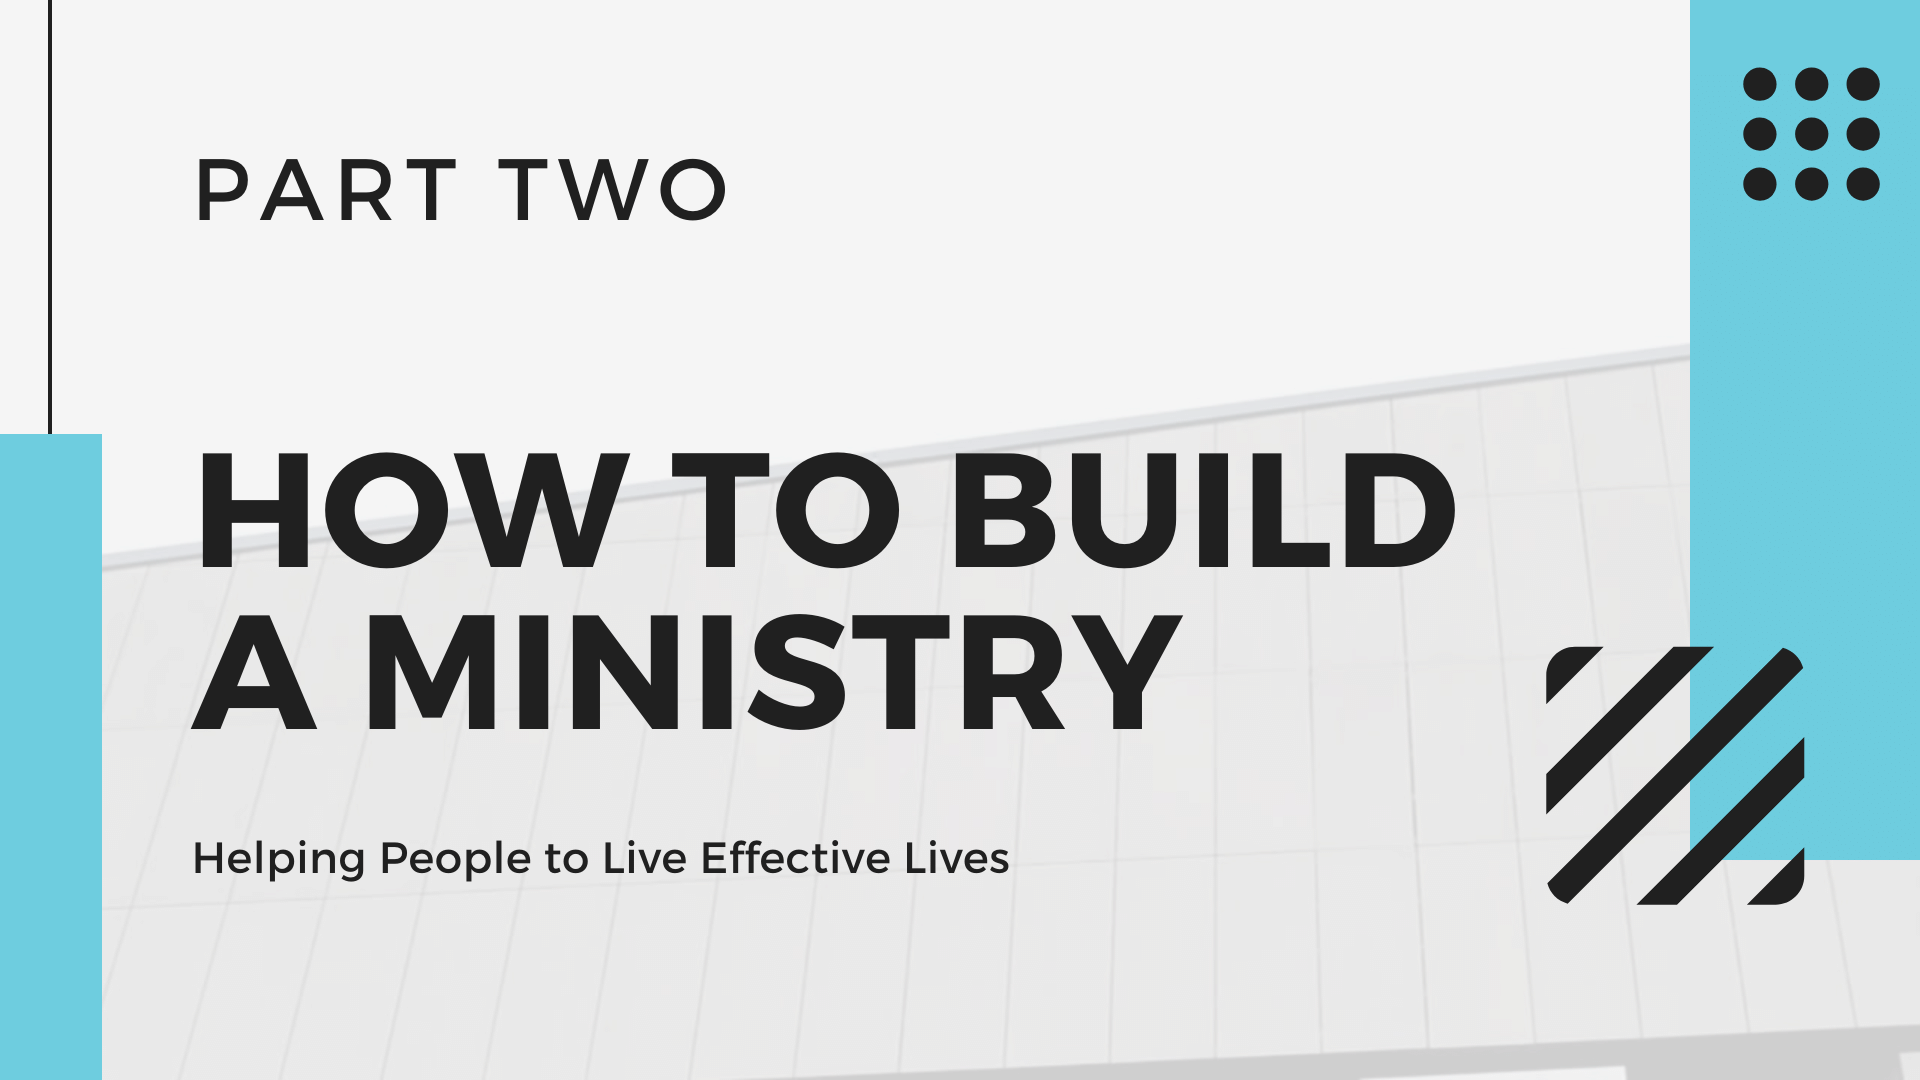 Video Channel How to Build a Ministry Part Two